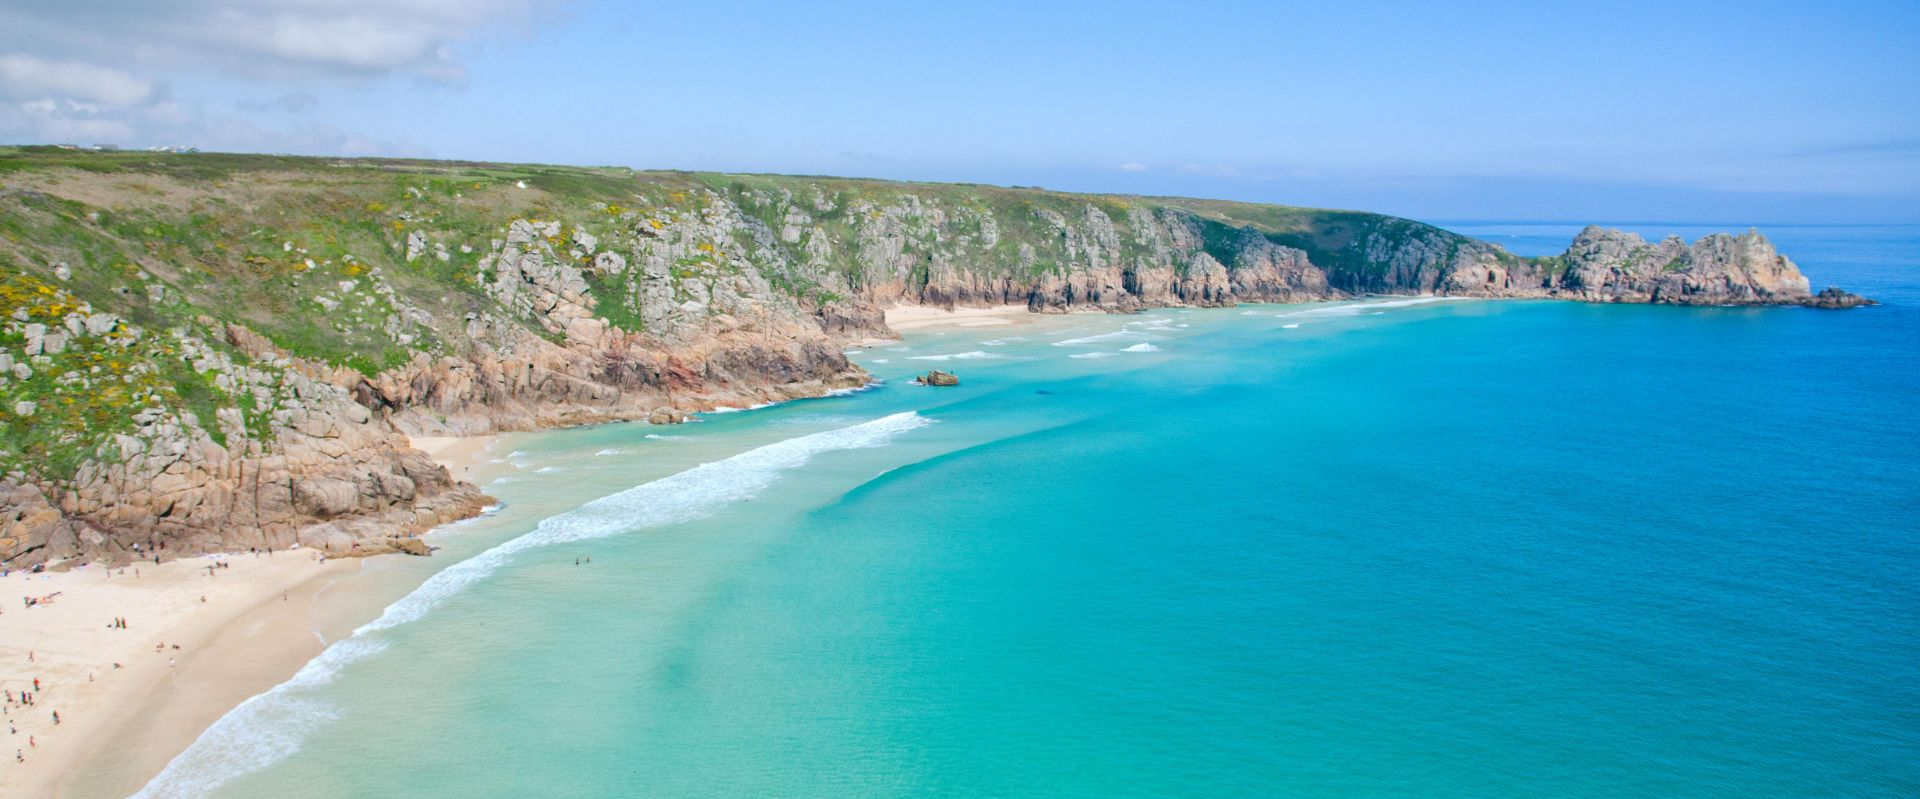 The view of Porthcurno Beach from the Minack Theatre